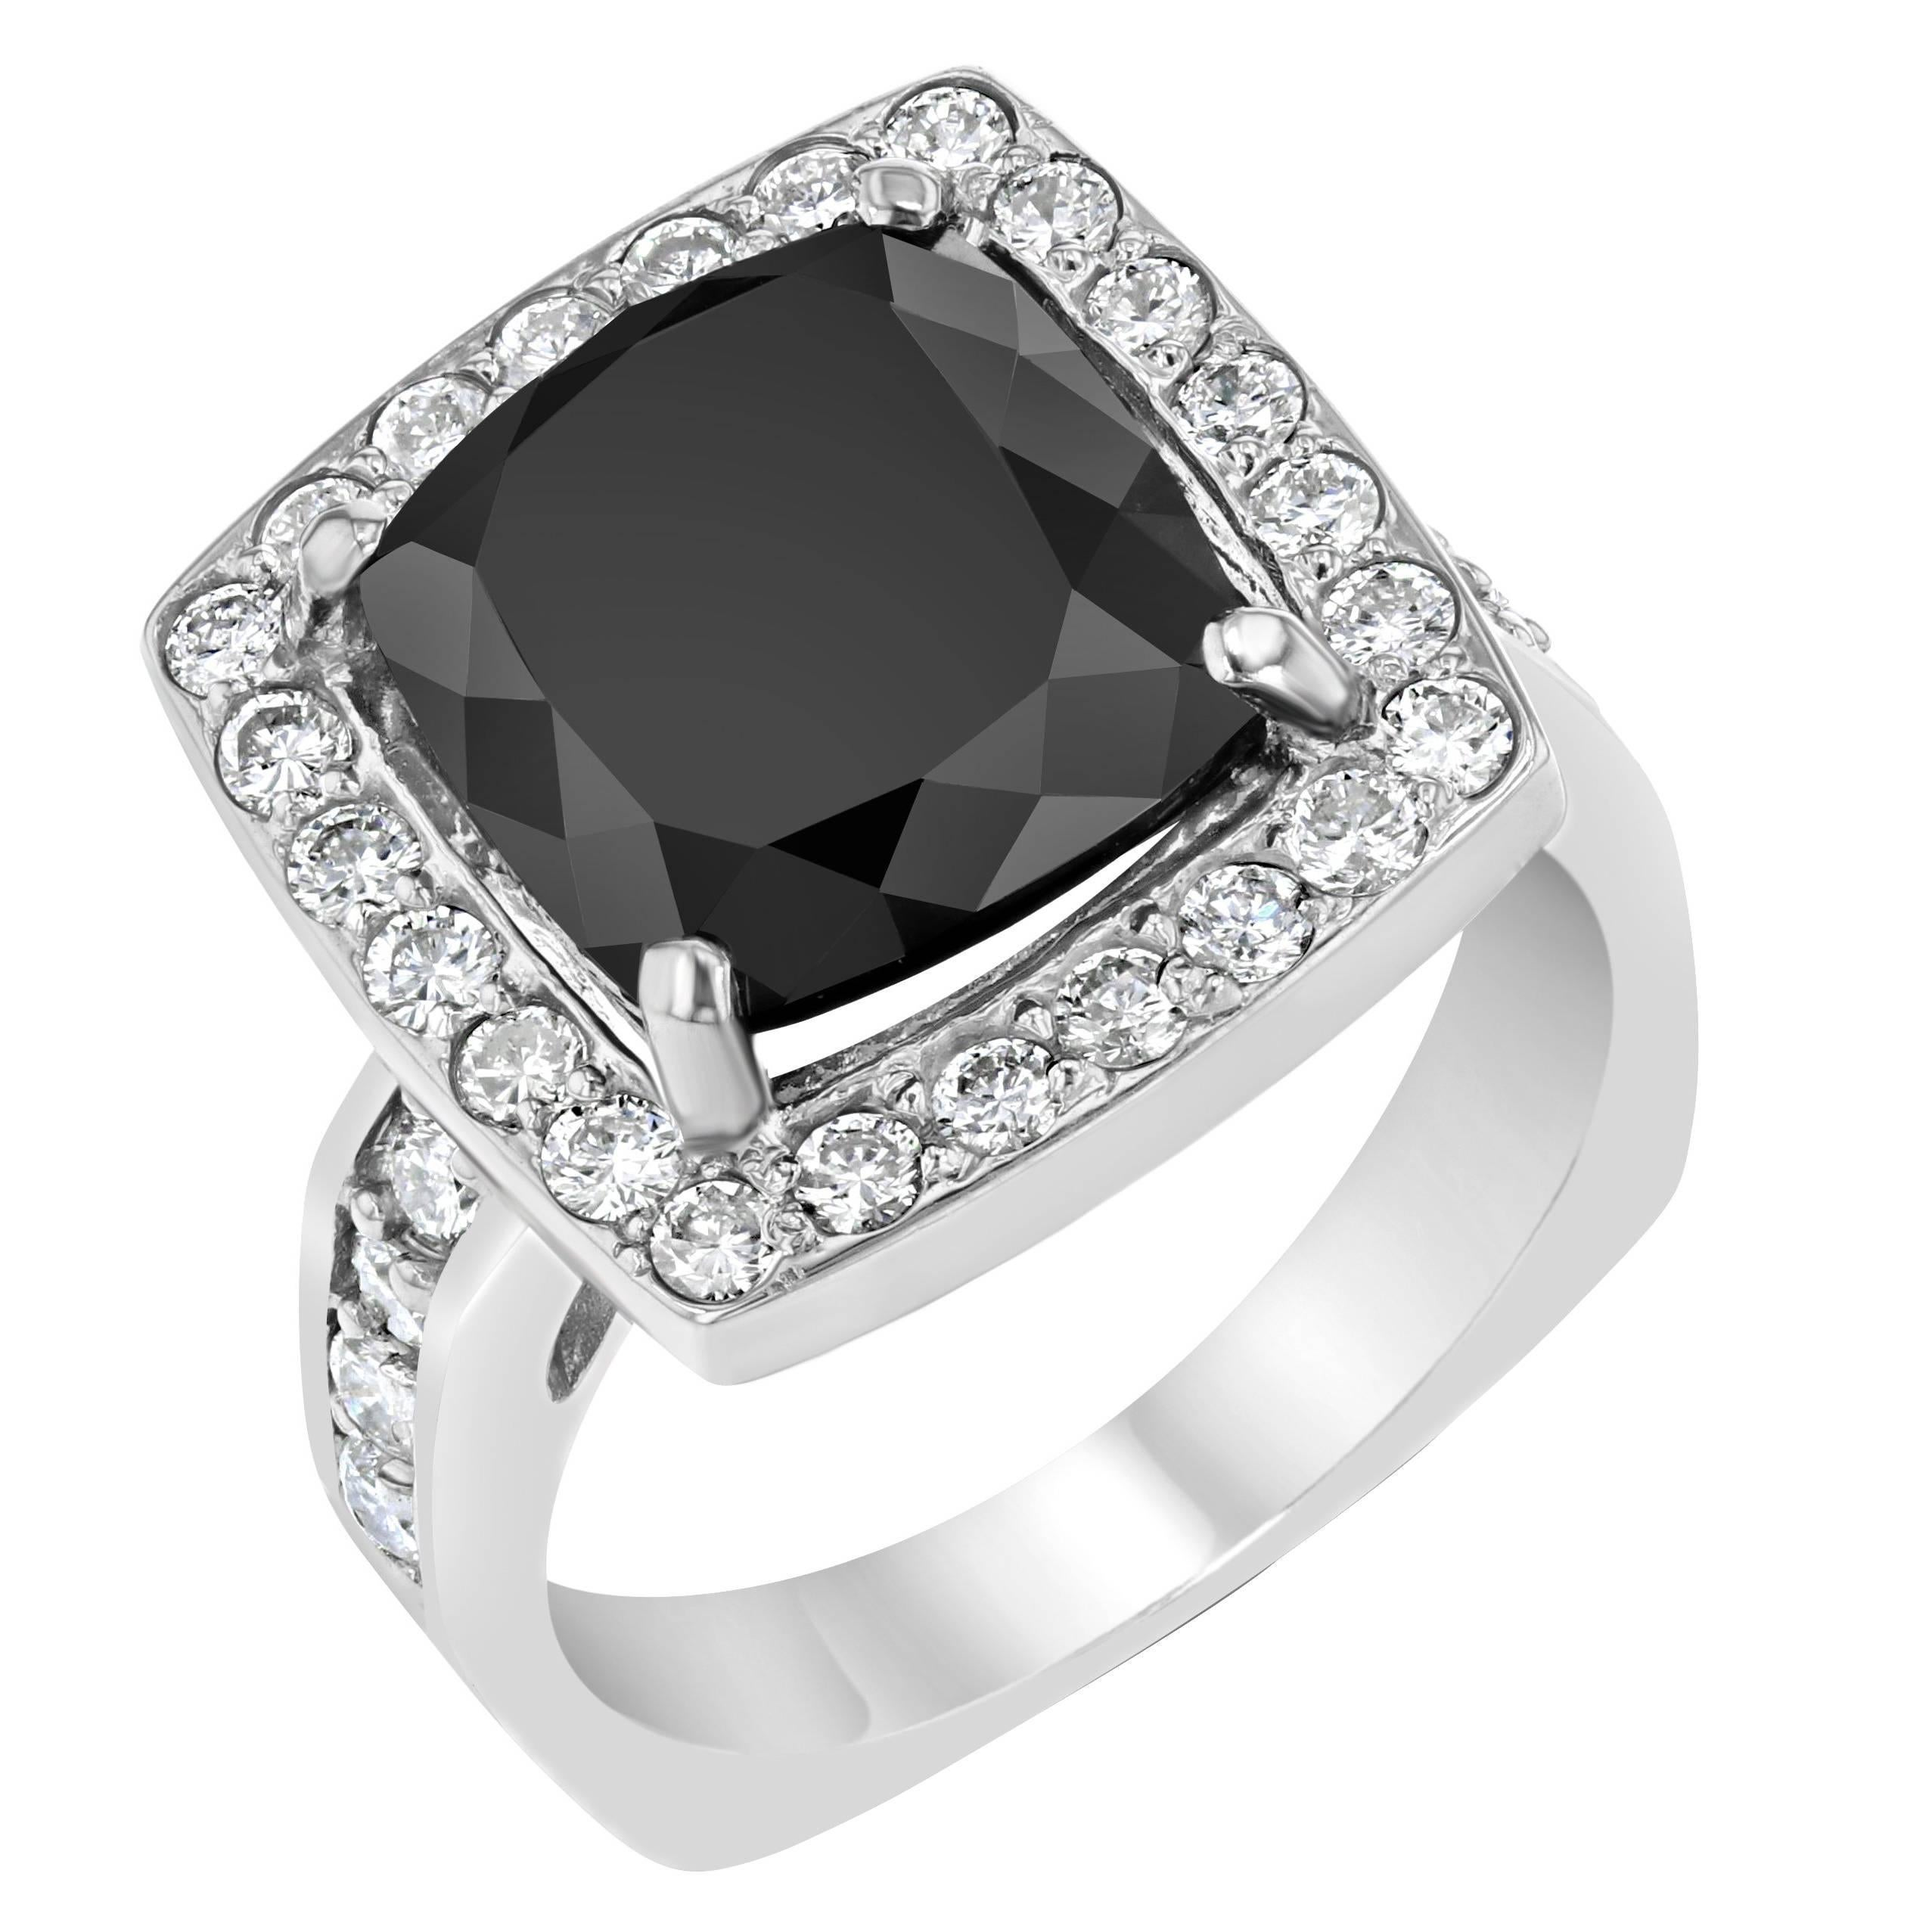 844 Carat Square Cut Black Diamond White Gold Engagement Ring For